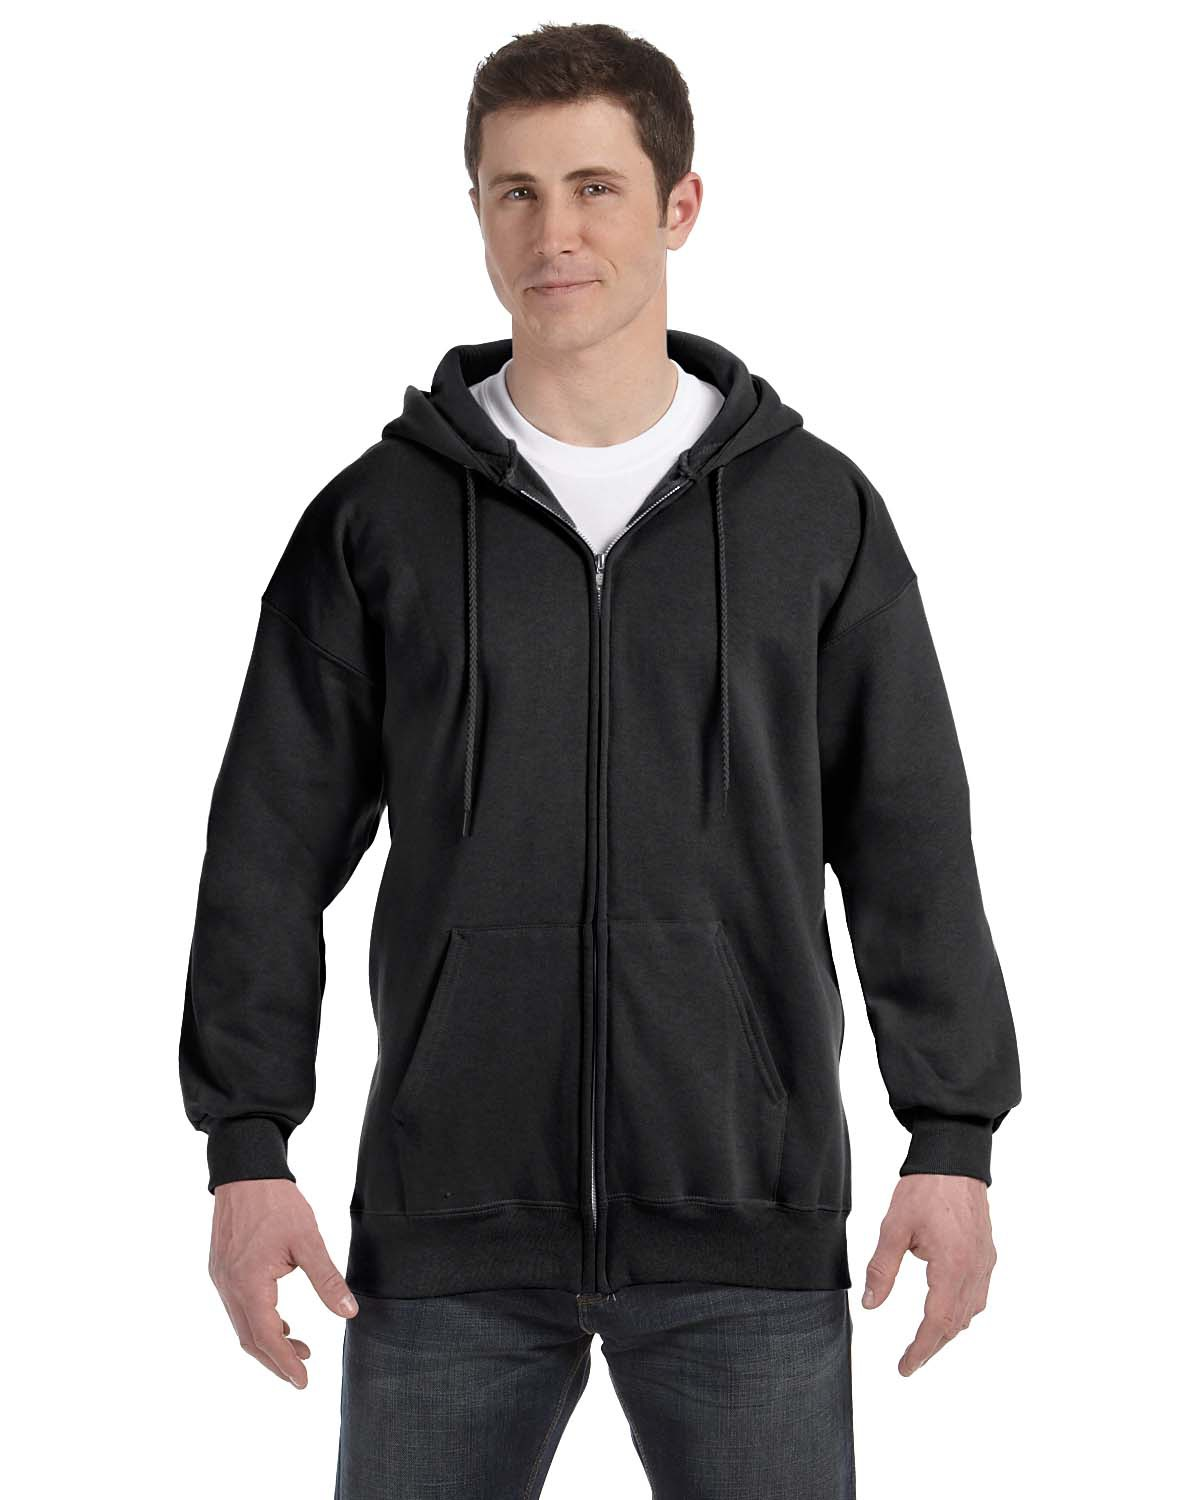 Hanes F280 - PrintProXP Ultimate Cotton Full-Zip Hooded Sweatshirt